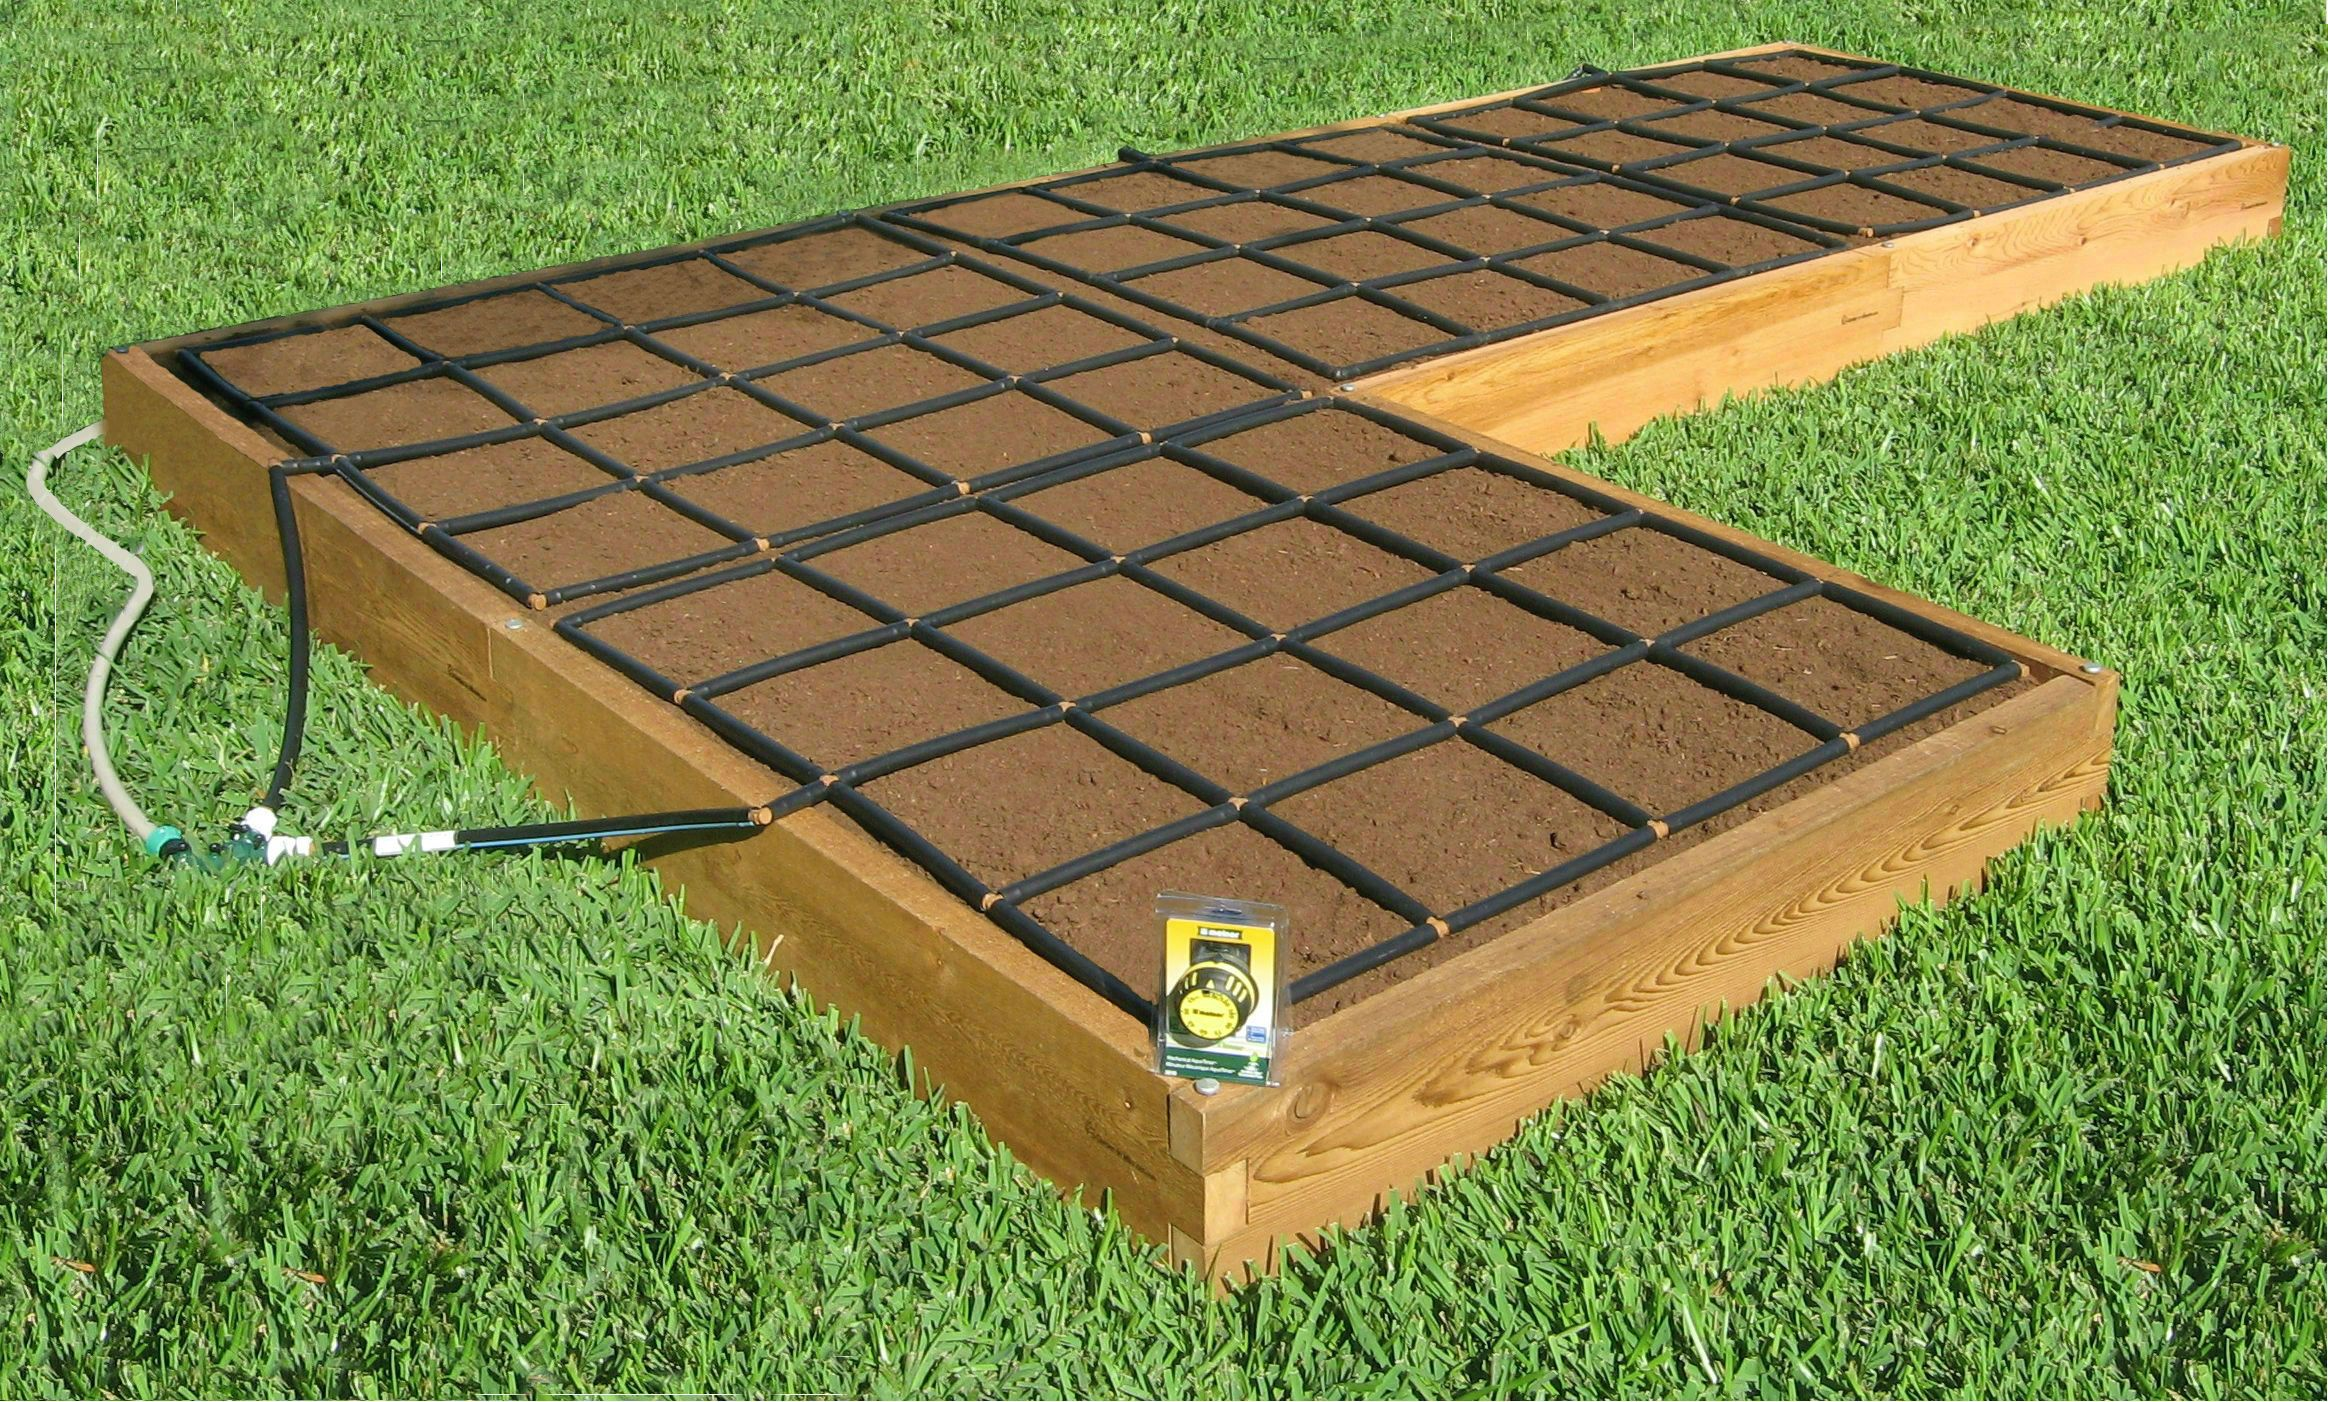 Charmant L Shaped Raised Garden Kit With Garden Grid Watering Systems. Tool Free  Design, Assembles By Hand In Minutes!